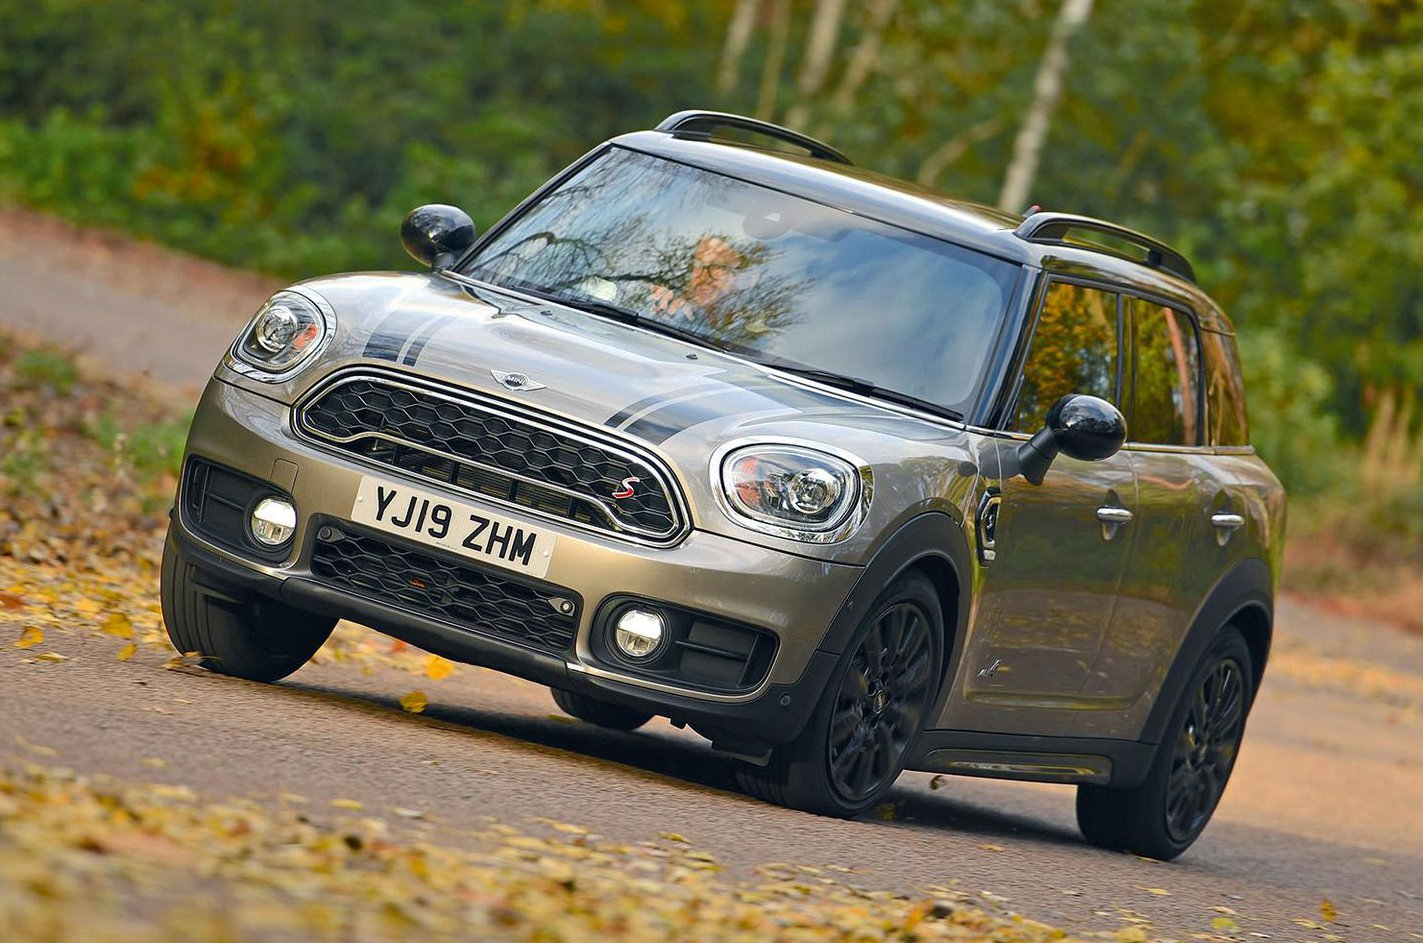 Mini Countryman front - 19 plate